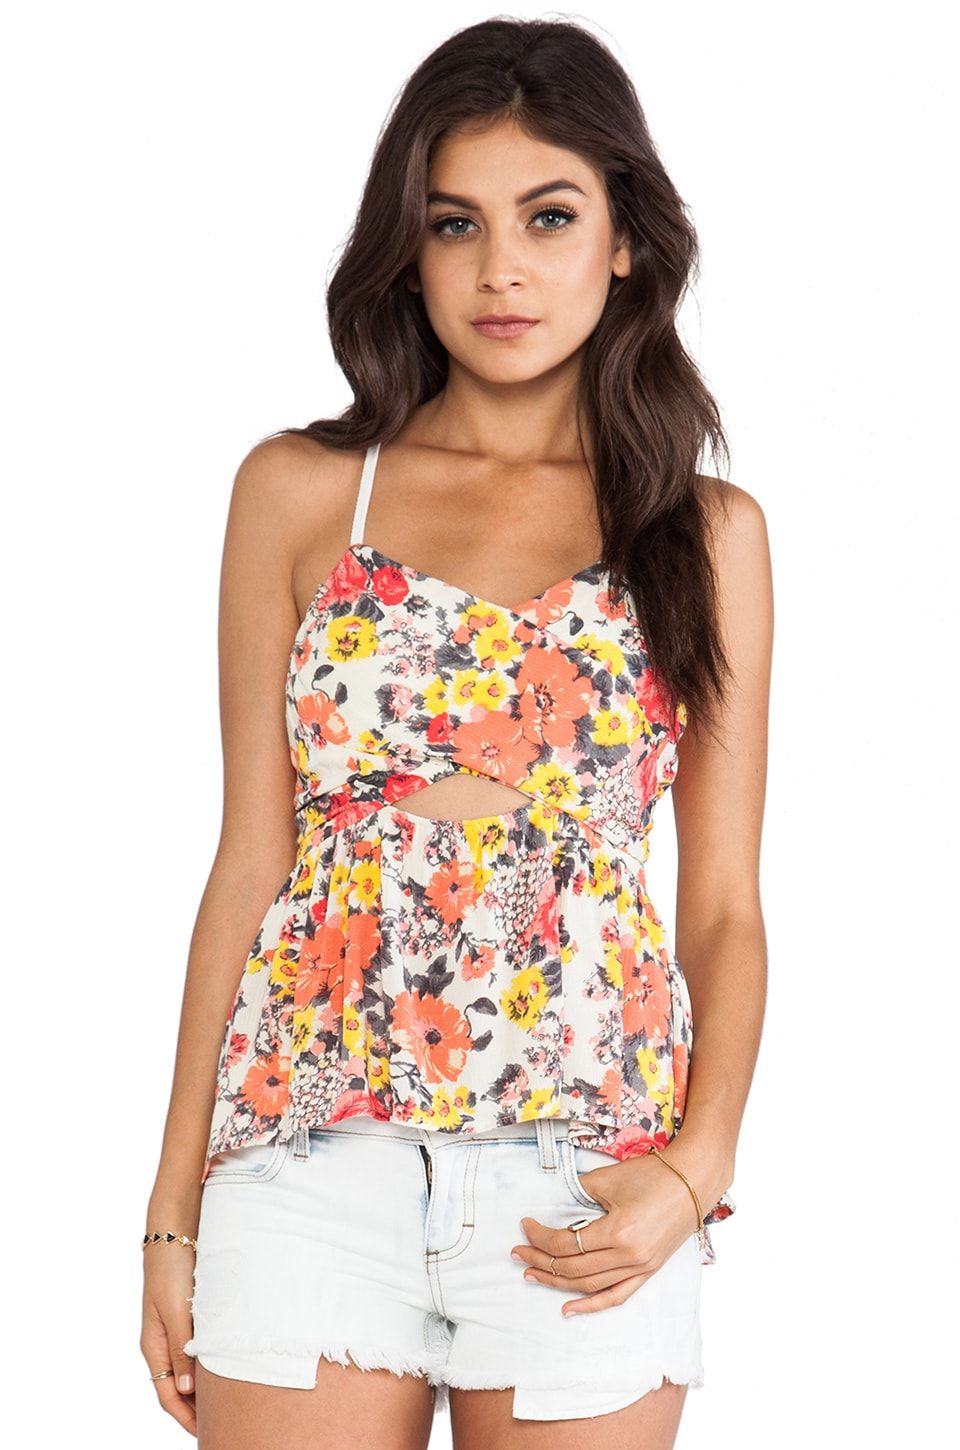 Free People Some Like it Hot Top in Swam Combo